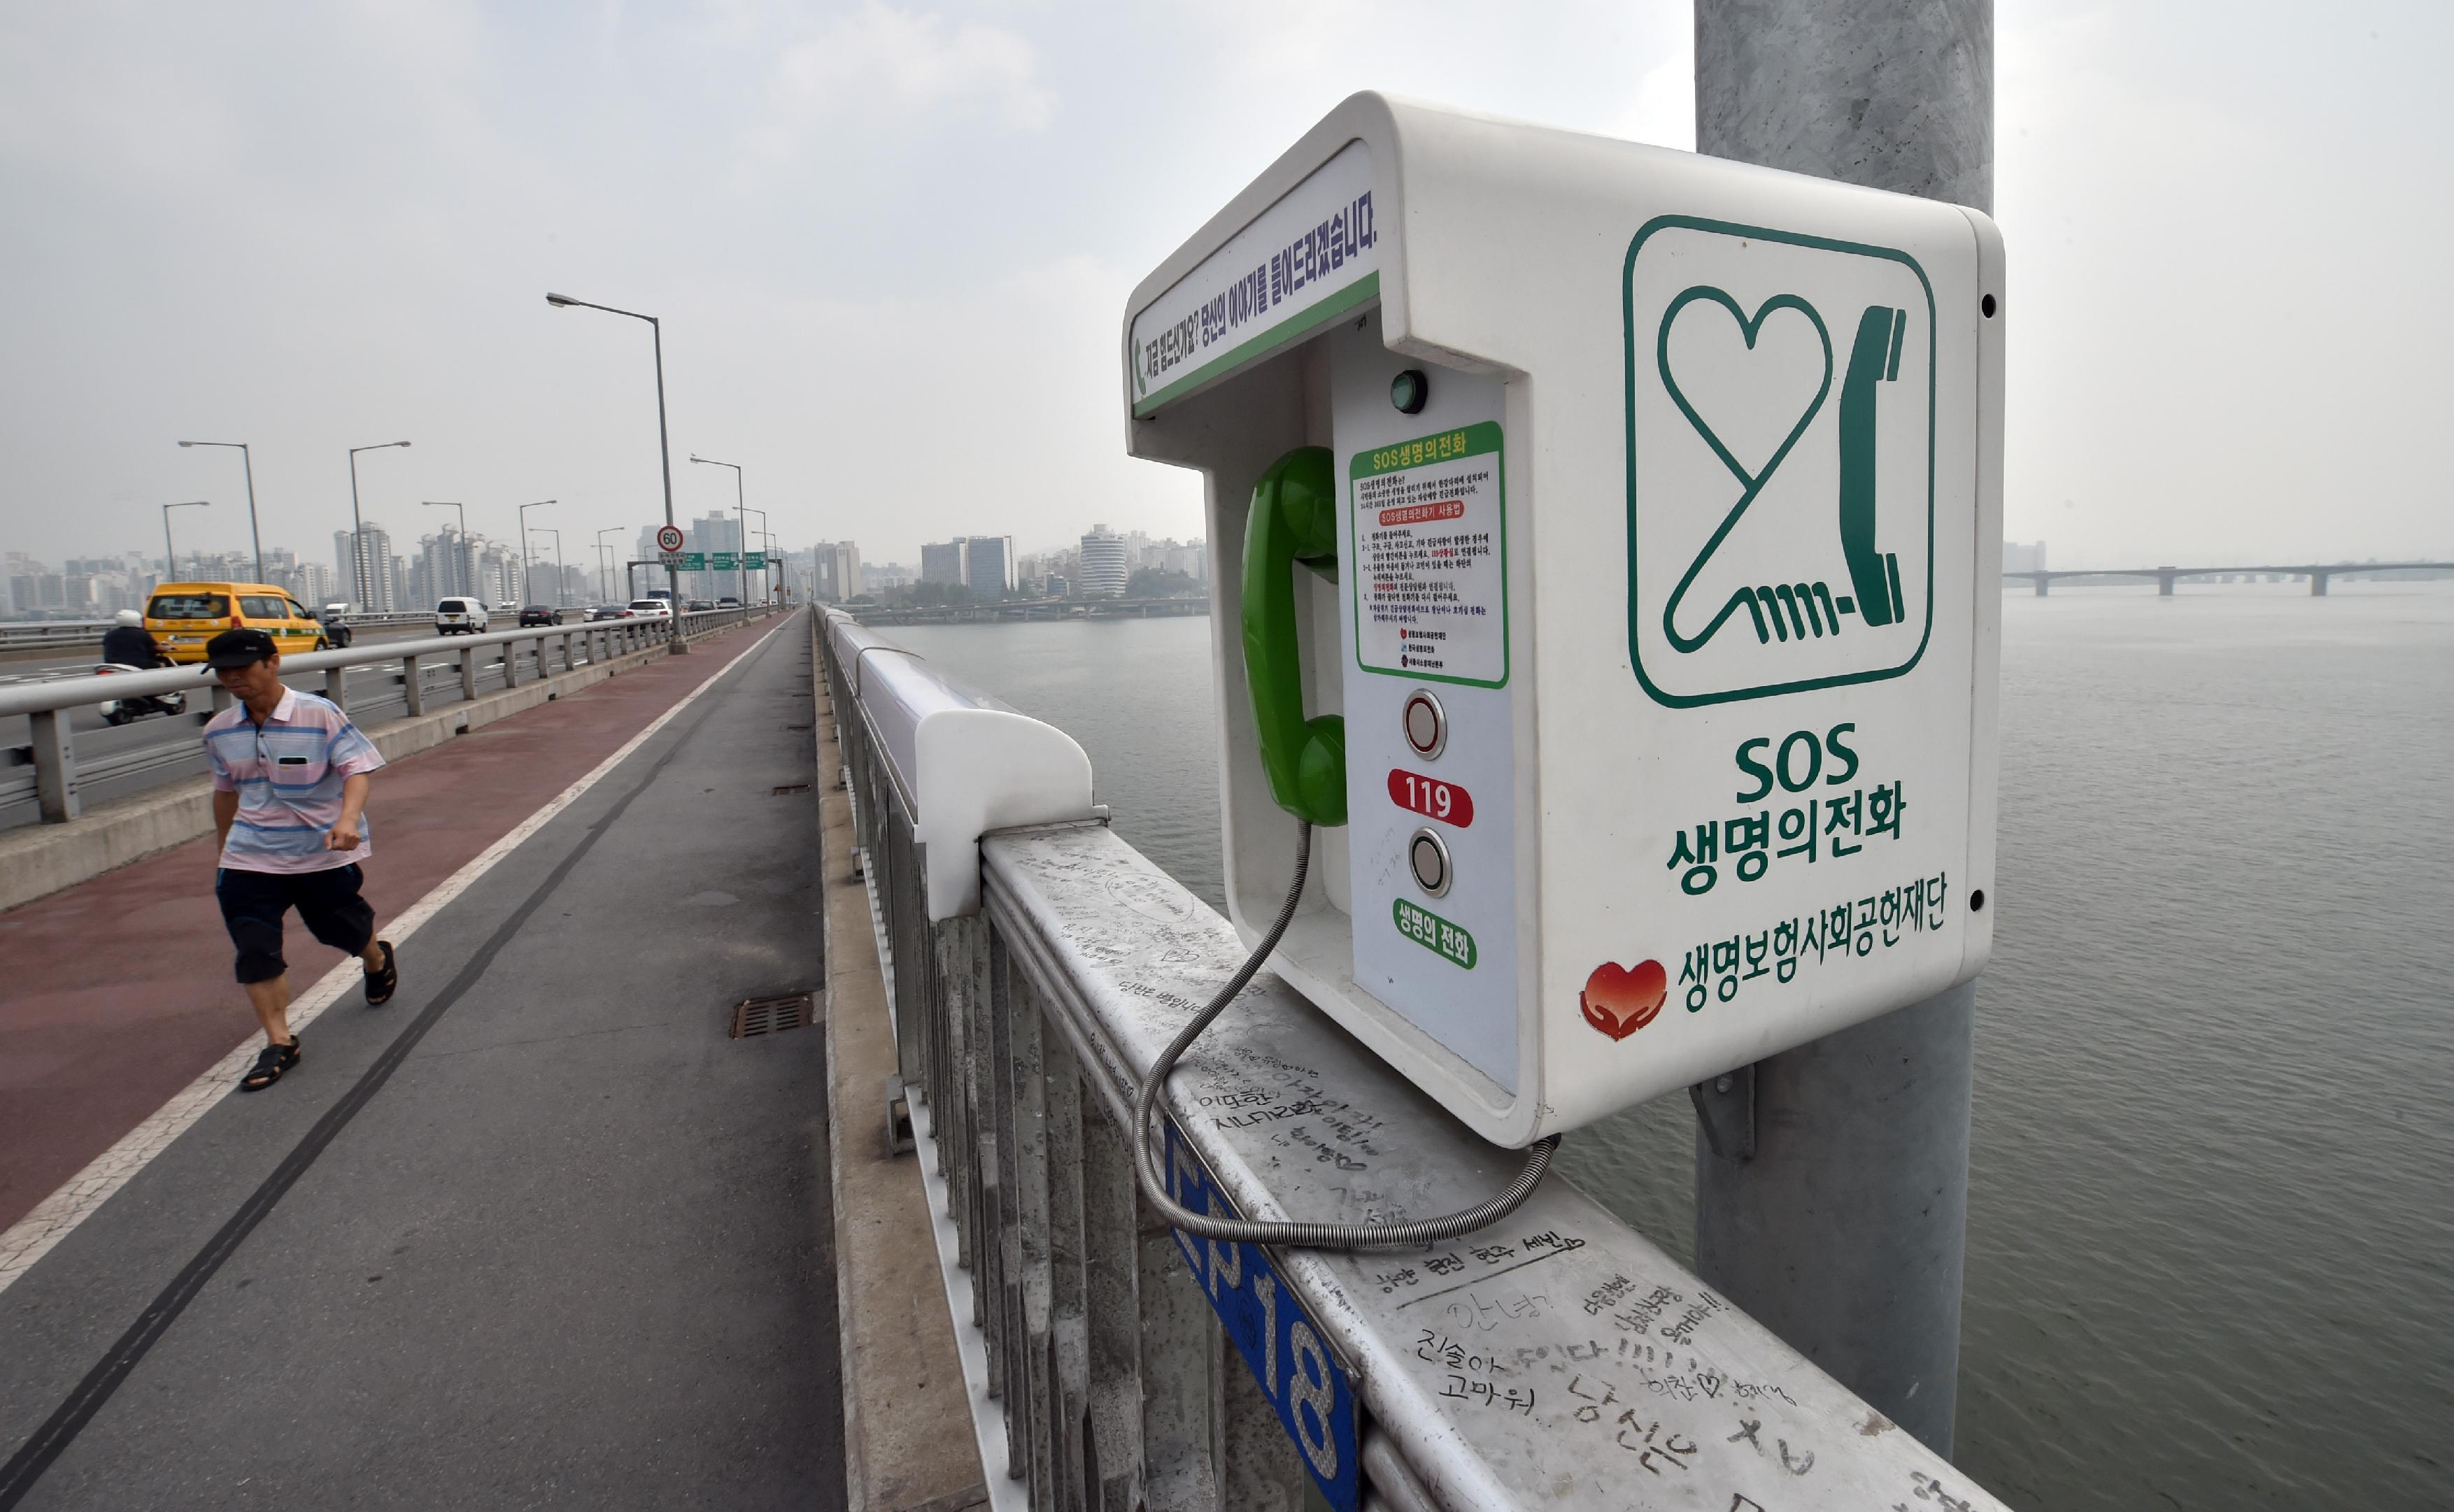 South Korea has installed emergency telephones to deter suicide attempts along the Mapo Bridge, which stretches over the Han river in Seoul, on July 14, 2014 (AFP Photo/Jung Yeon-Je)